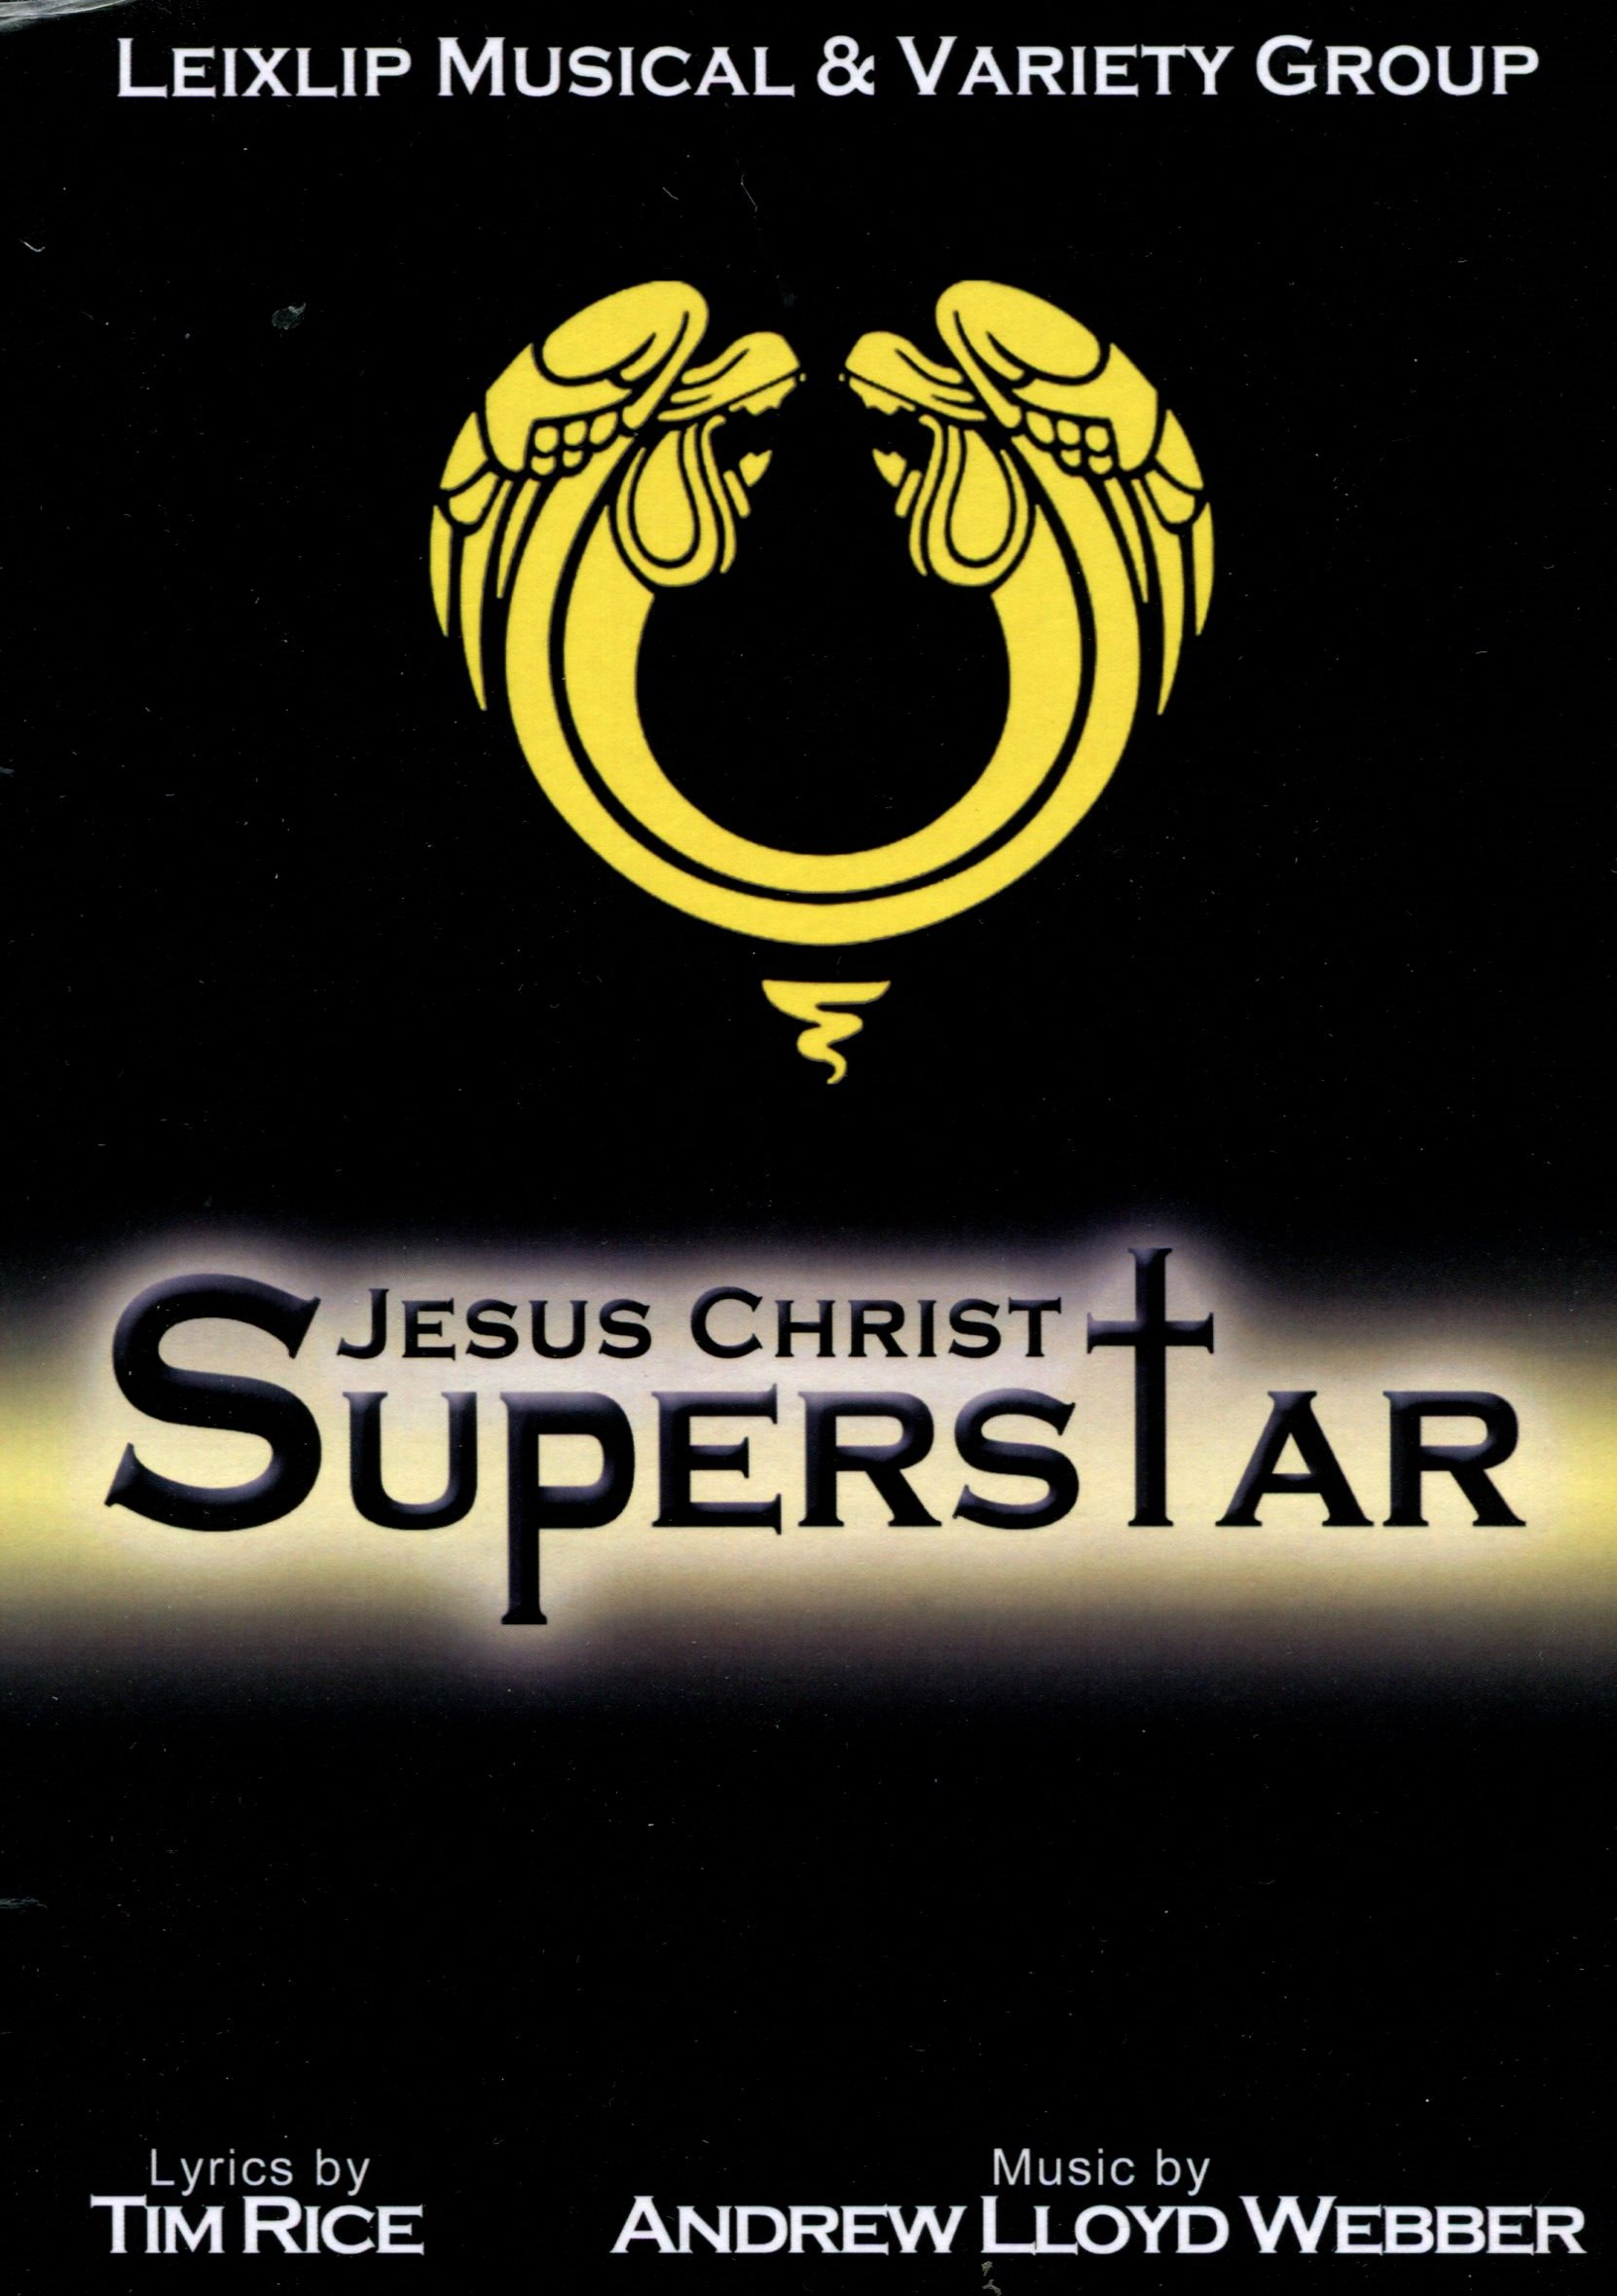 Jesus Christ Superstar 2014 (www.lmvg.ie).jpg